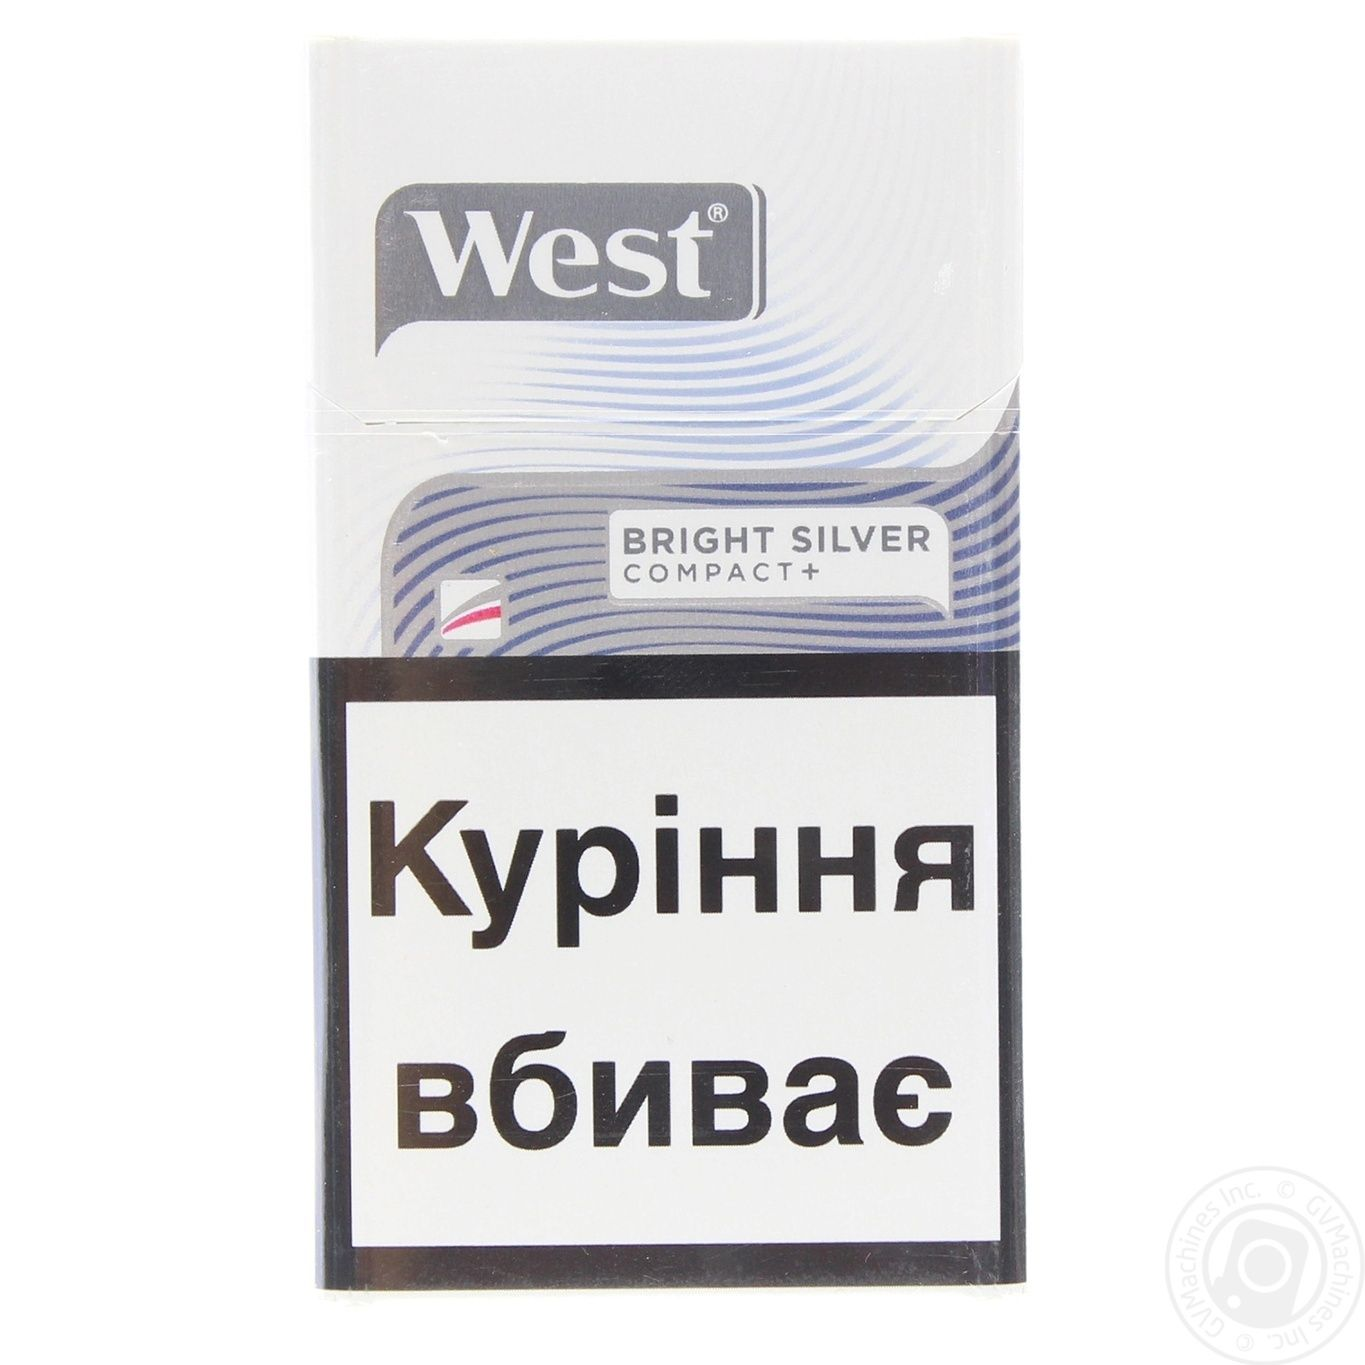 What are West cigarettes